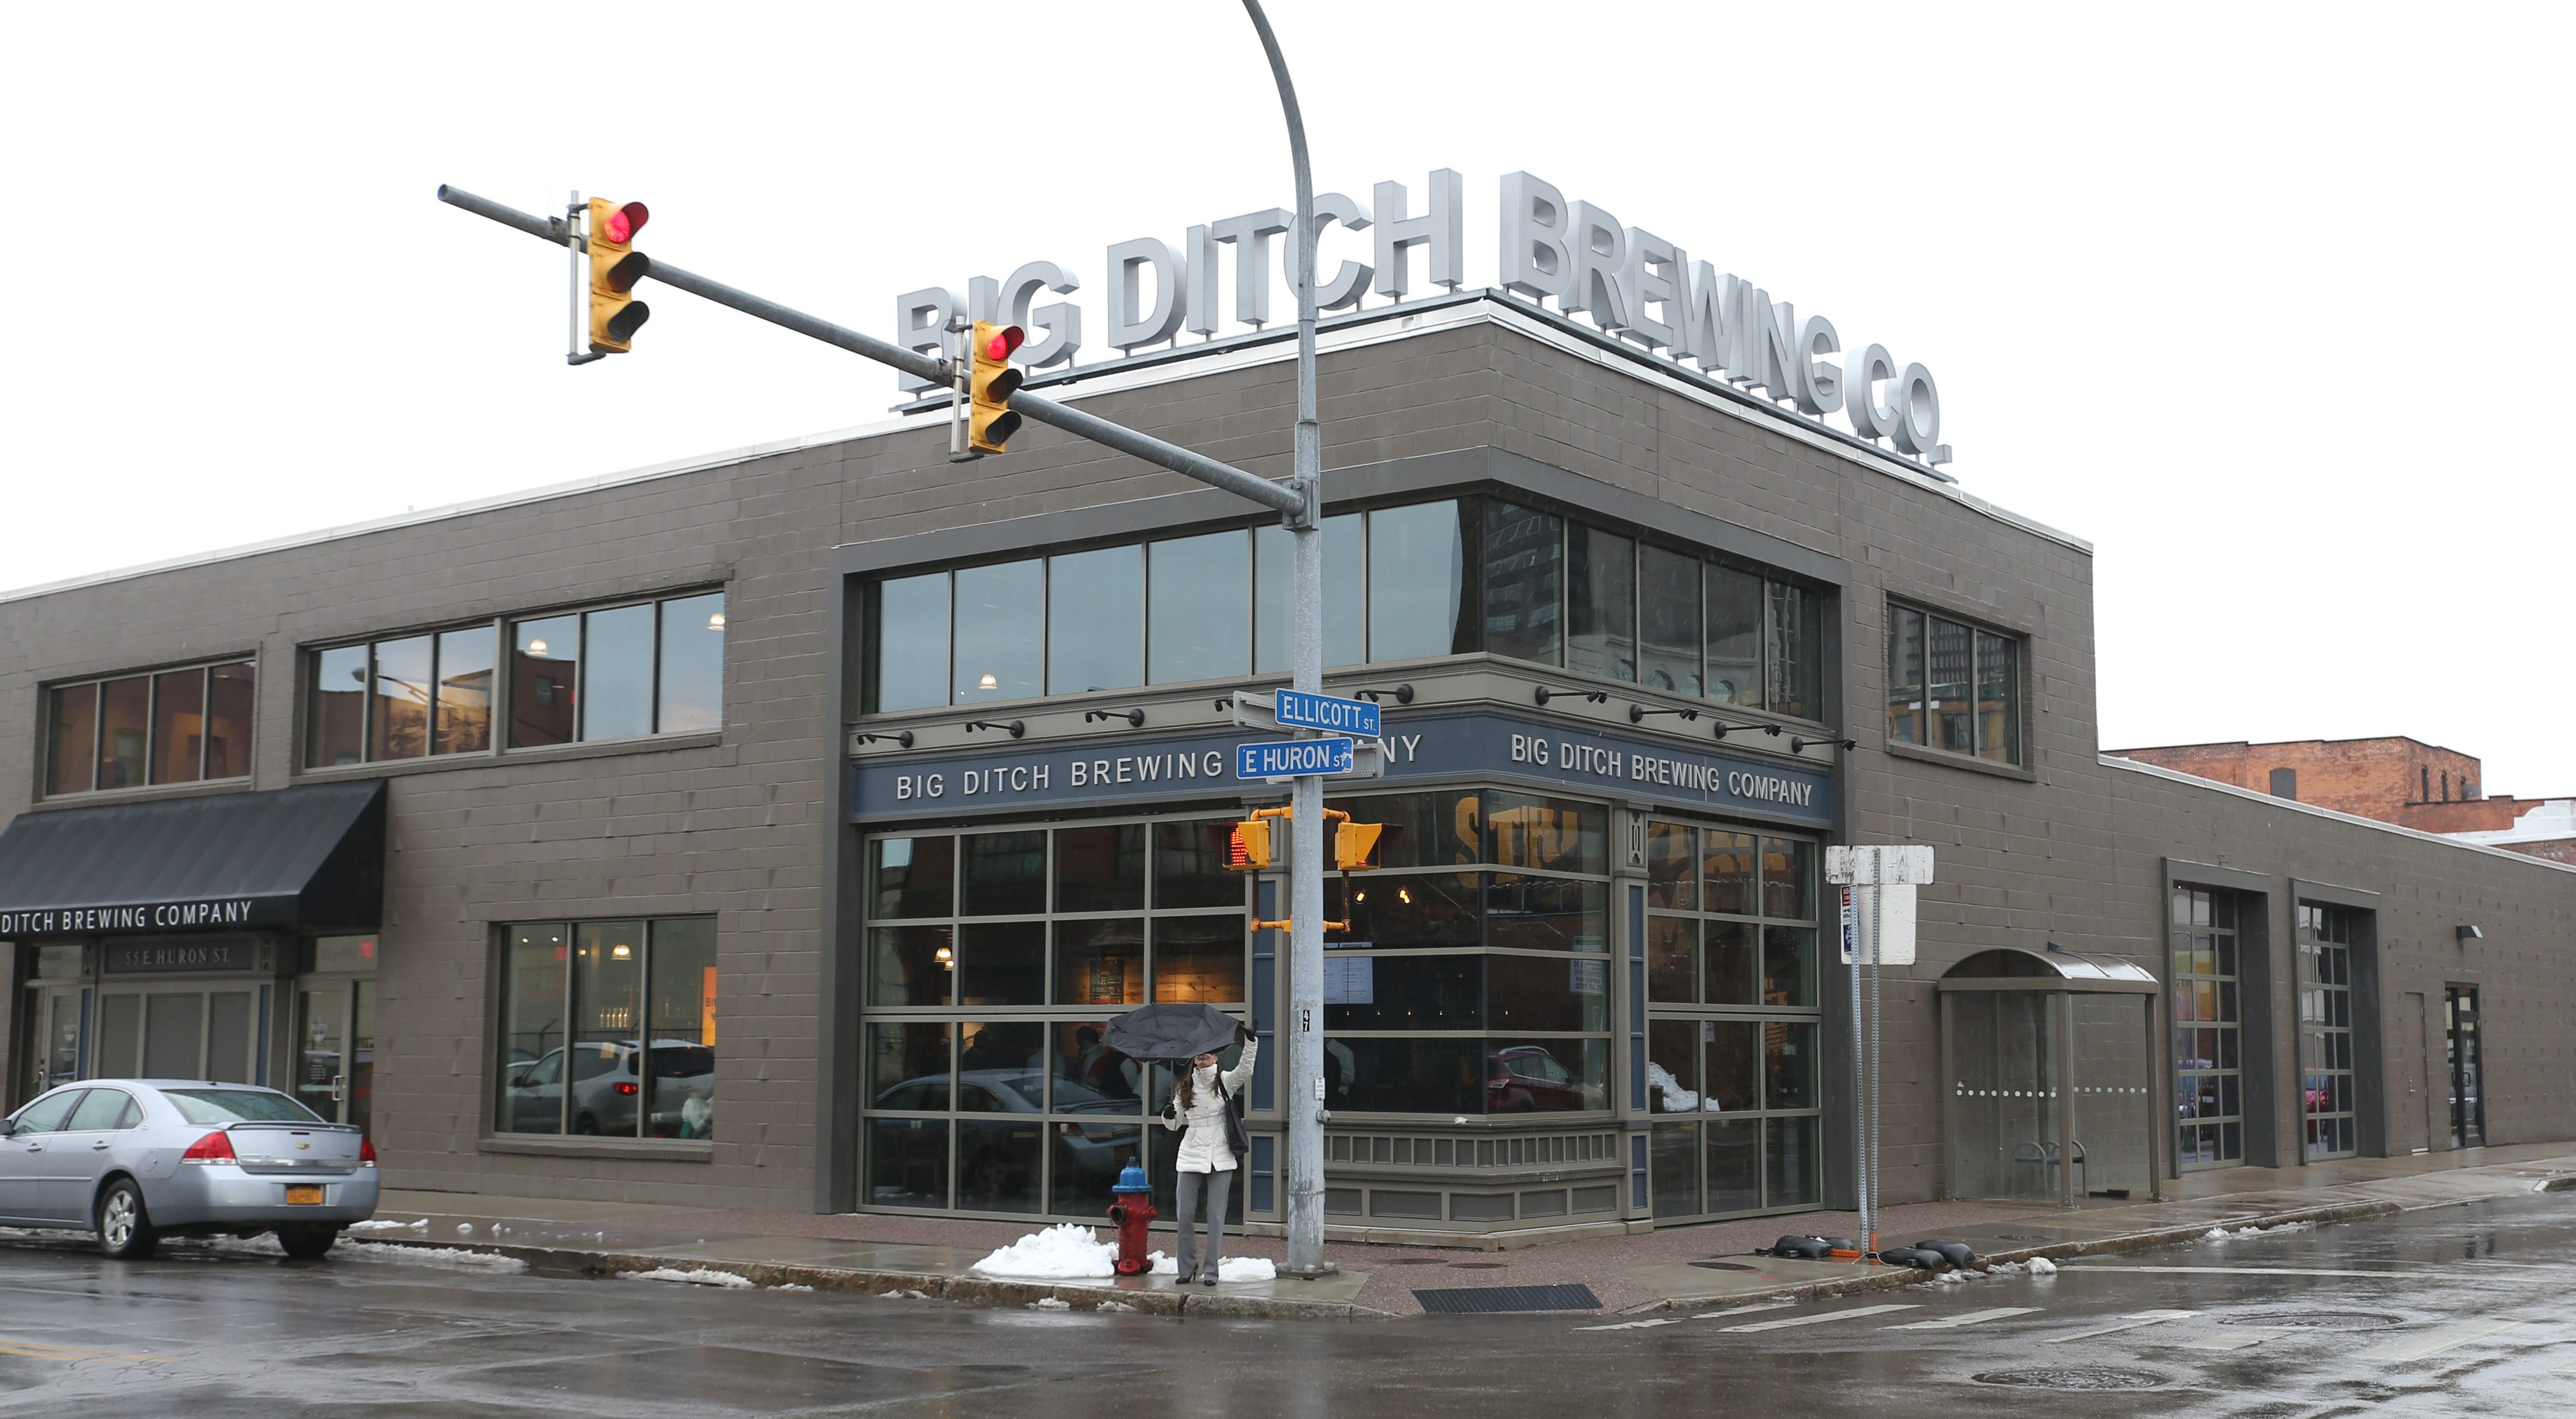 Big Ditch Brewing Co., at 55 East Huron St. in Buffalo, will use its loan to triple its brewing capacity and add a canning line that will enable the craft brewer to sell its beer at grocery stores, possibly including Wegmans, and at beverage centers.